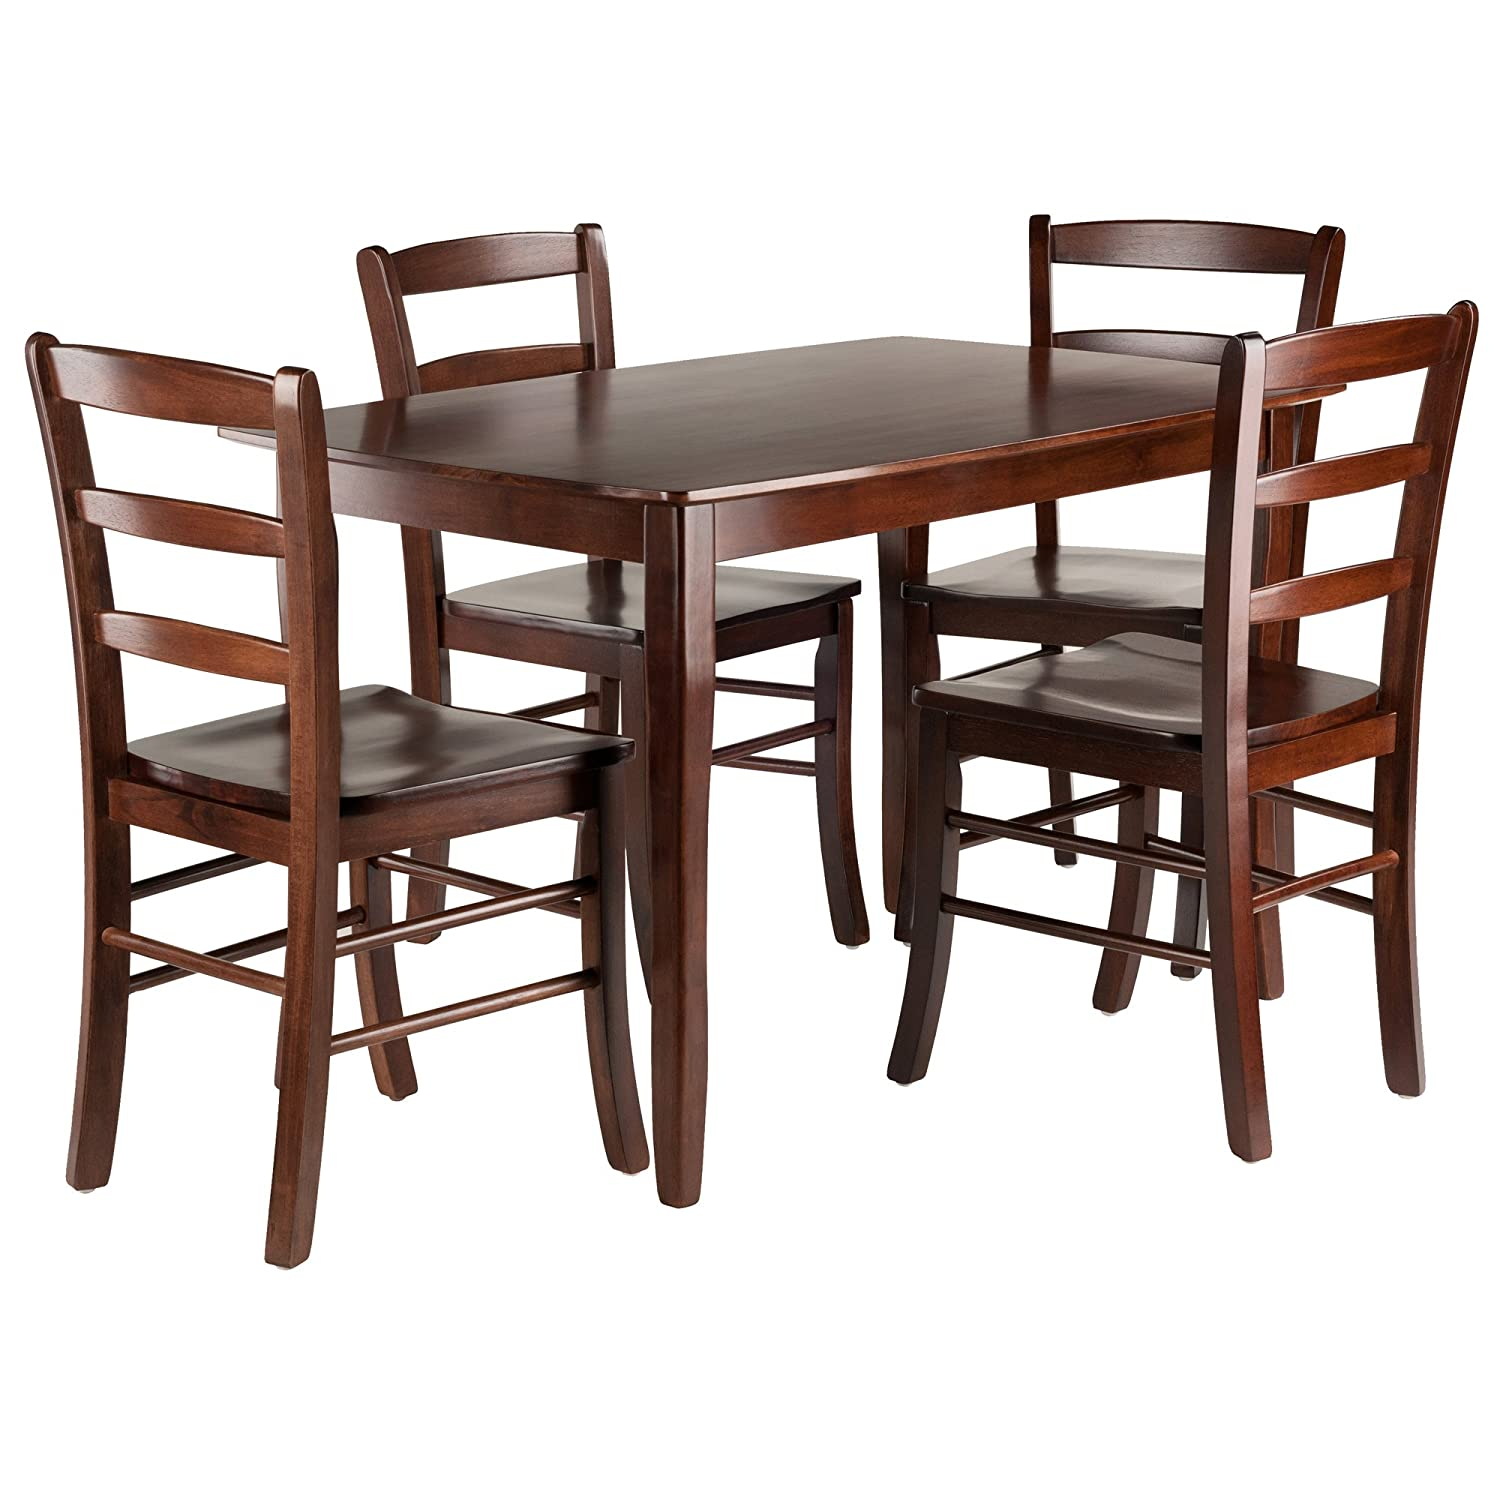 Amazon com winsome wood 94508 inglewood 5 pc set table w 4 ladderback chairs dining walnut table chair sets